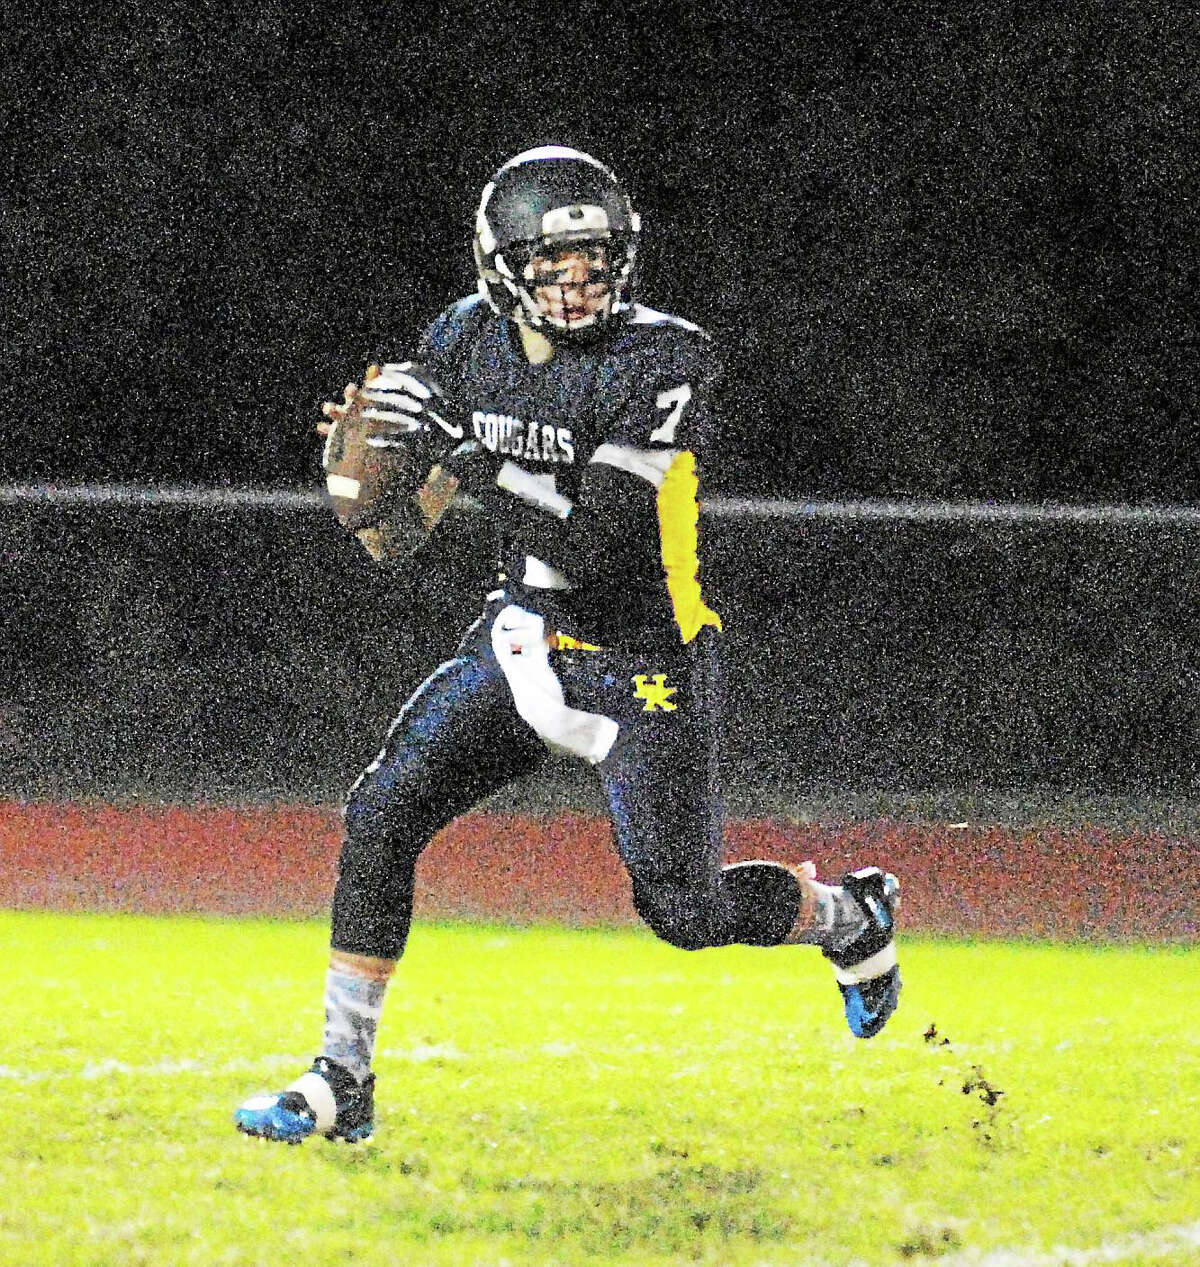 H-K junior quarterback Alex Segaline tossed three touchdown passes and returned an interception for a touchdown in the Cougars' 44-18 win Thursday.